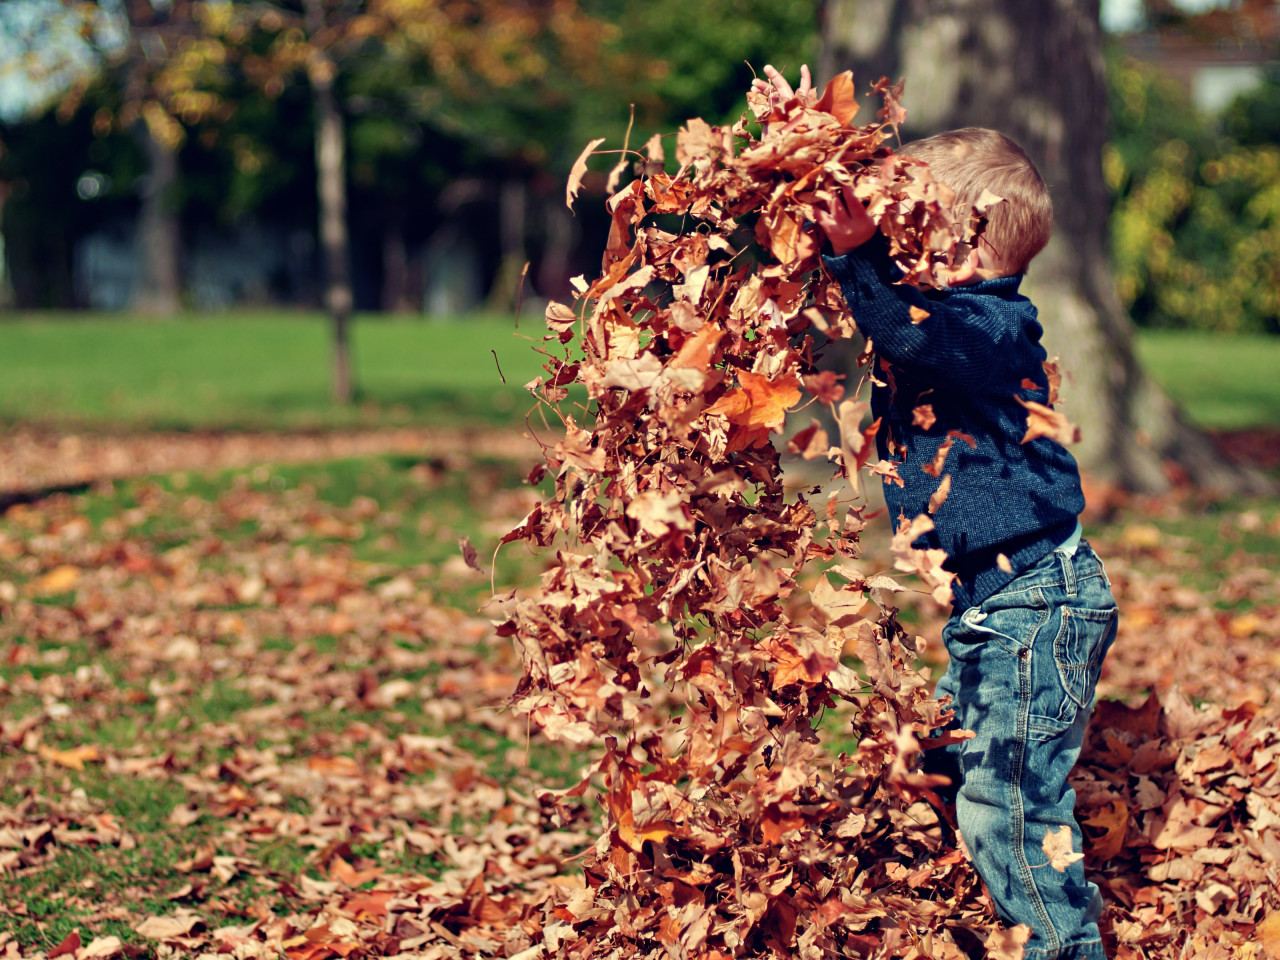 The child is playing with leaves wallpaper 1280x960